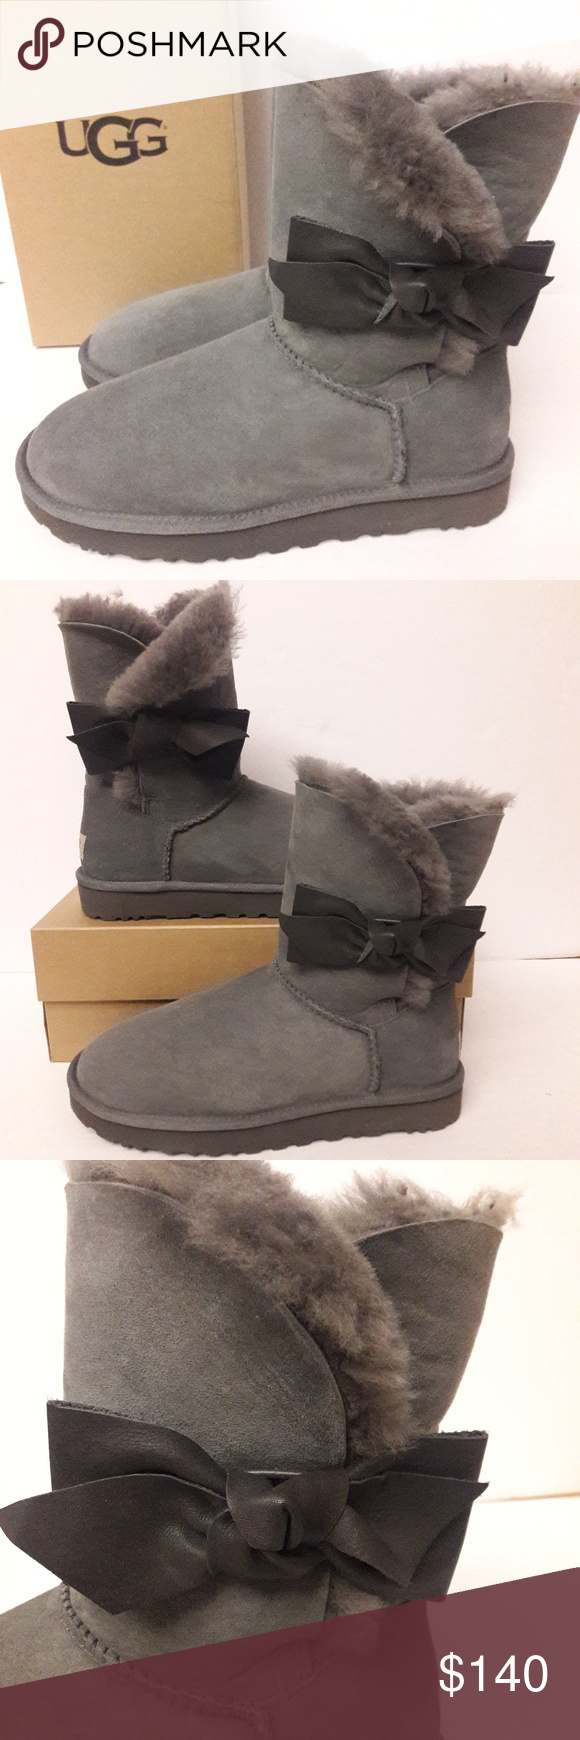 de4eb585d87 New UGG Boots Size 8 NWOB Women's gorgeous UGG boots in Grey. Size 8 ...